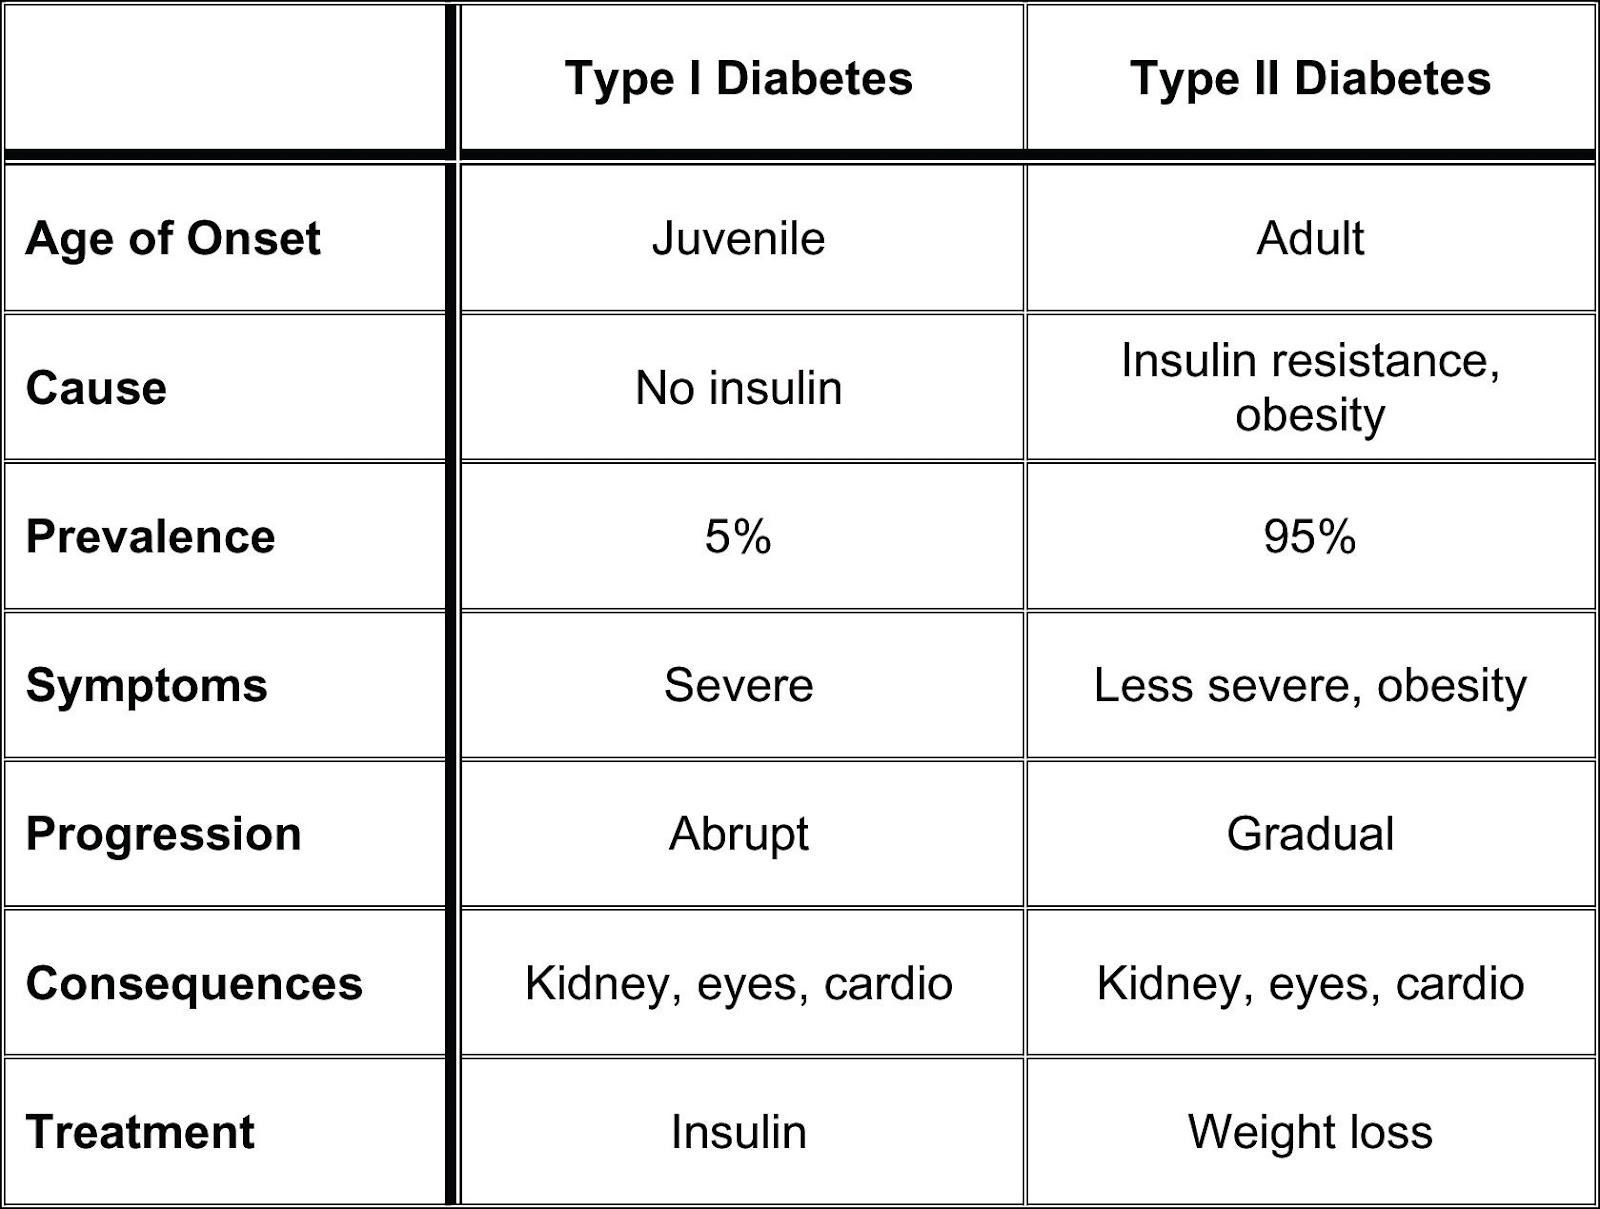 cure your diabetes specially type ii diabetes treatment and type 2